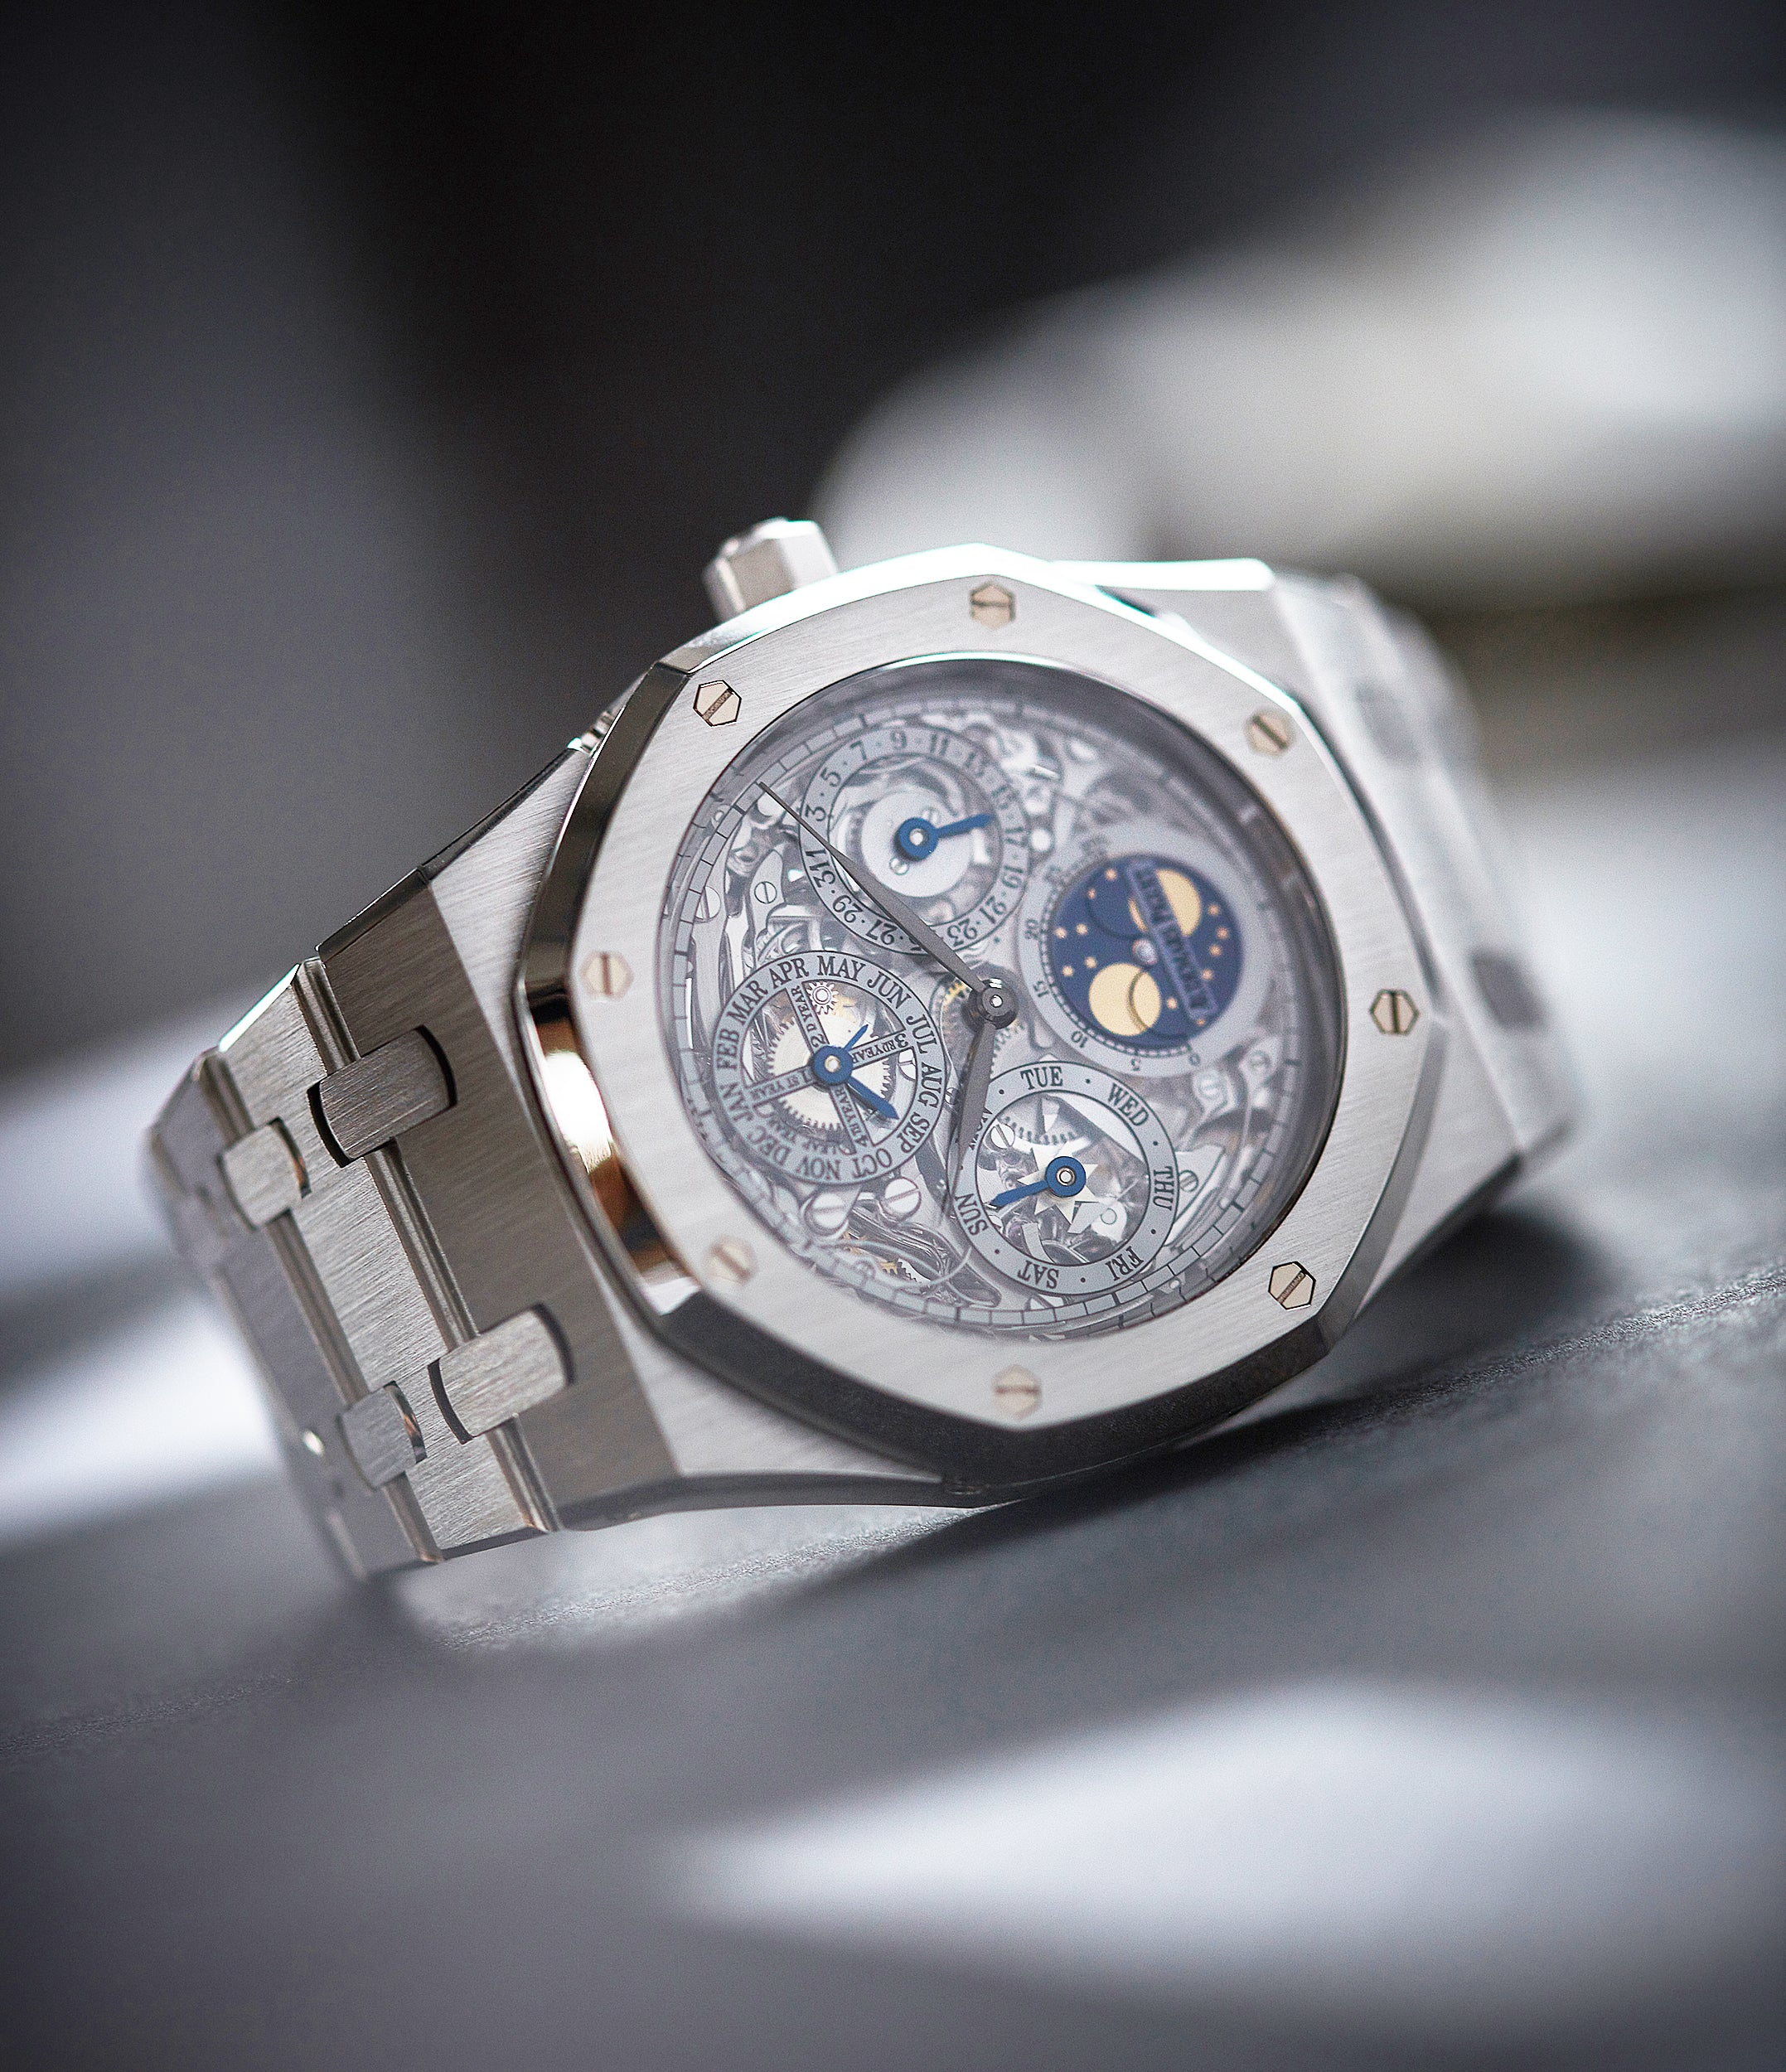 Audemars Piguet Royal Oak 25829PT perpetual calendar skeleton dial platinum full set pre-owned watch for sale online at A Collected Man London UK specialist of rare watches